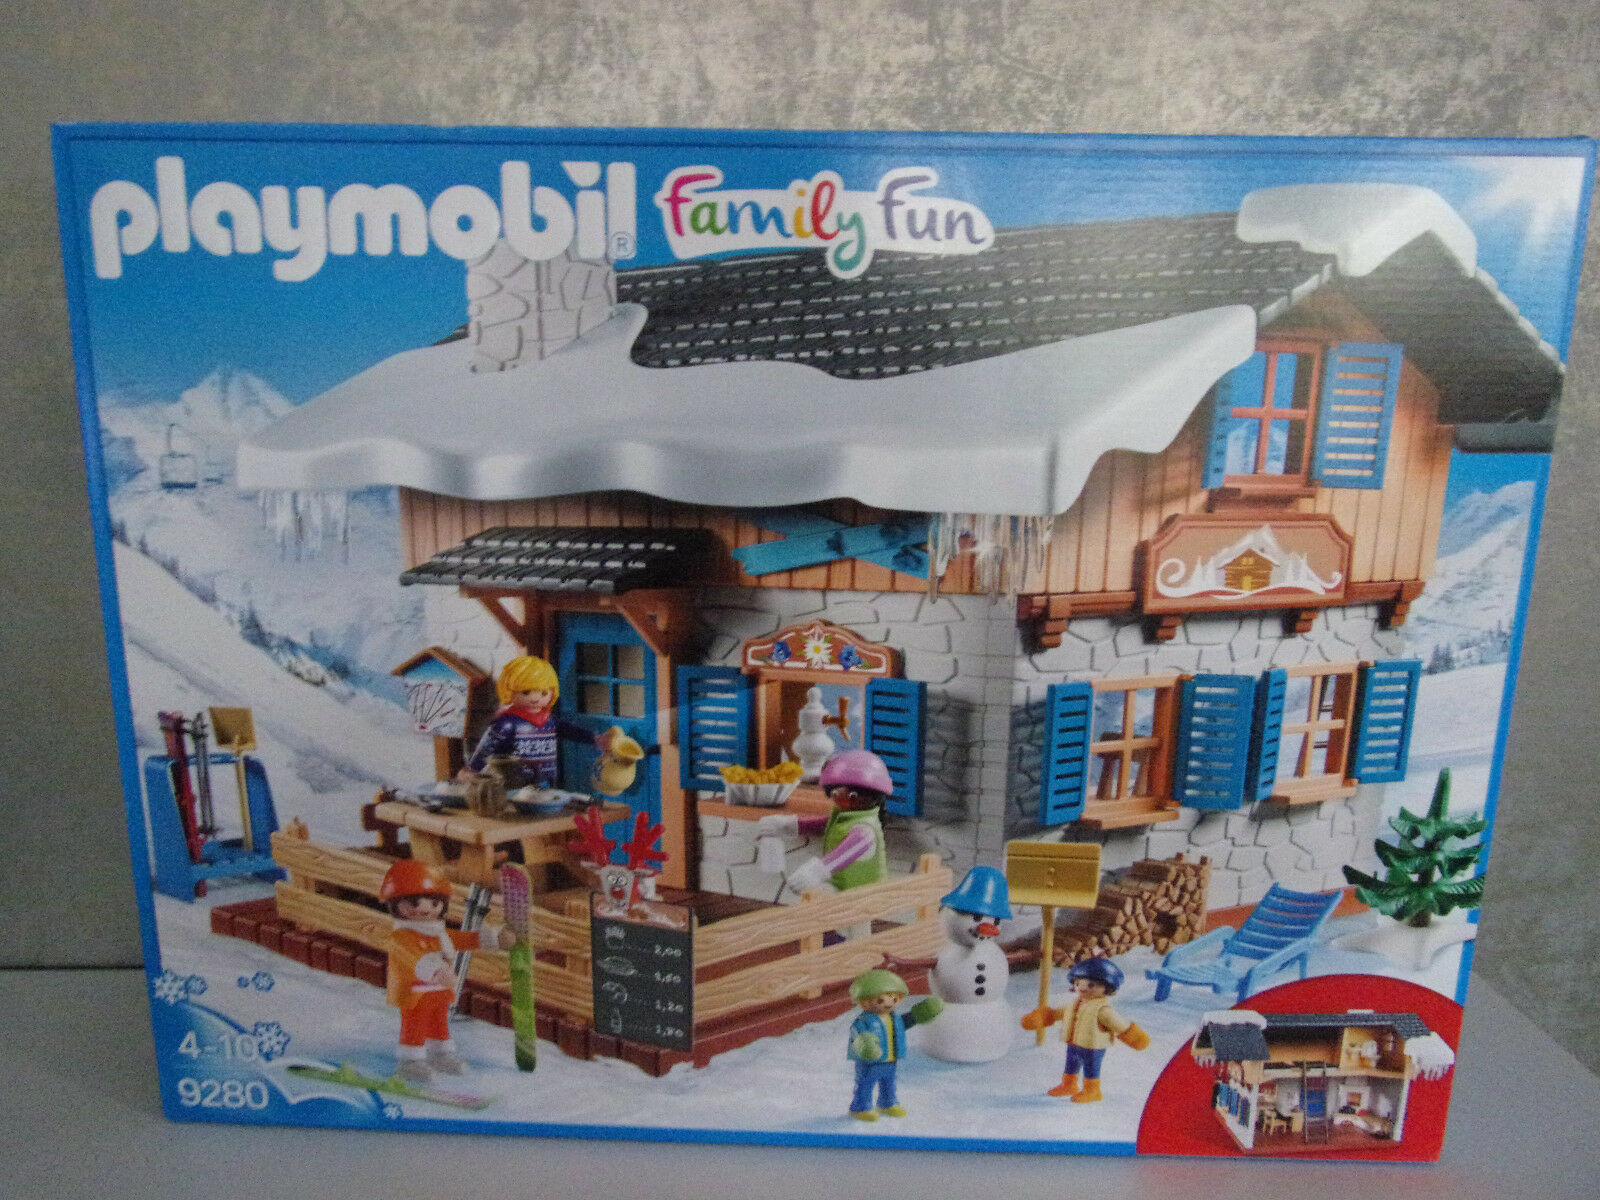 PLAYMOBIL Family divertimento 9280  Chalet-NUOVO & OVP  migliore marca